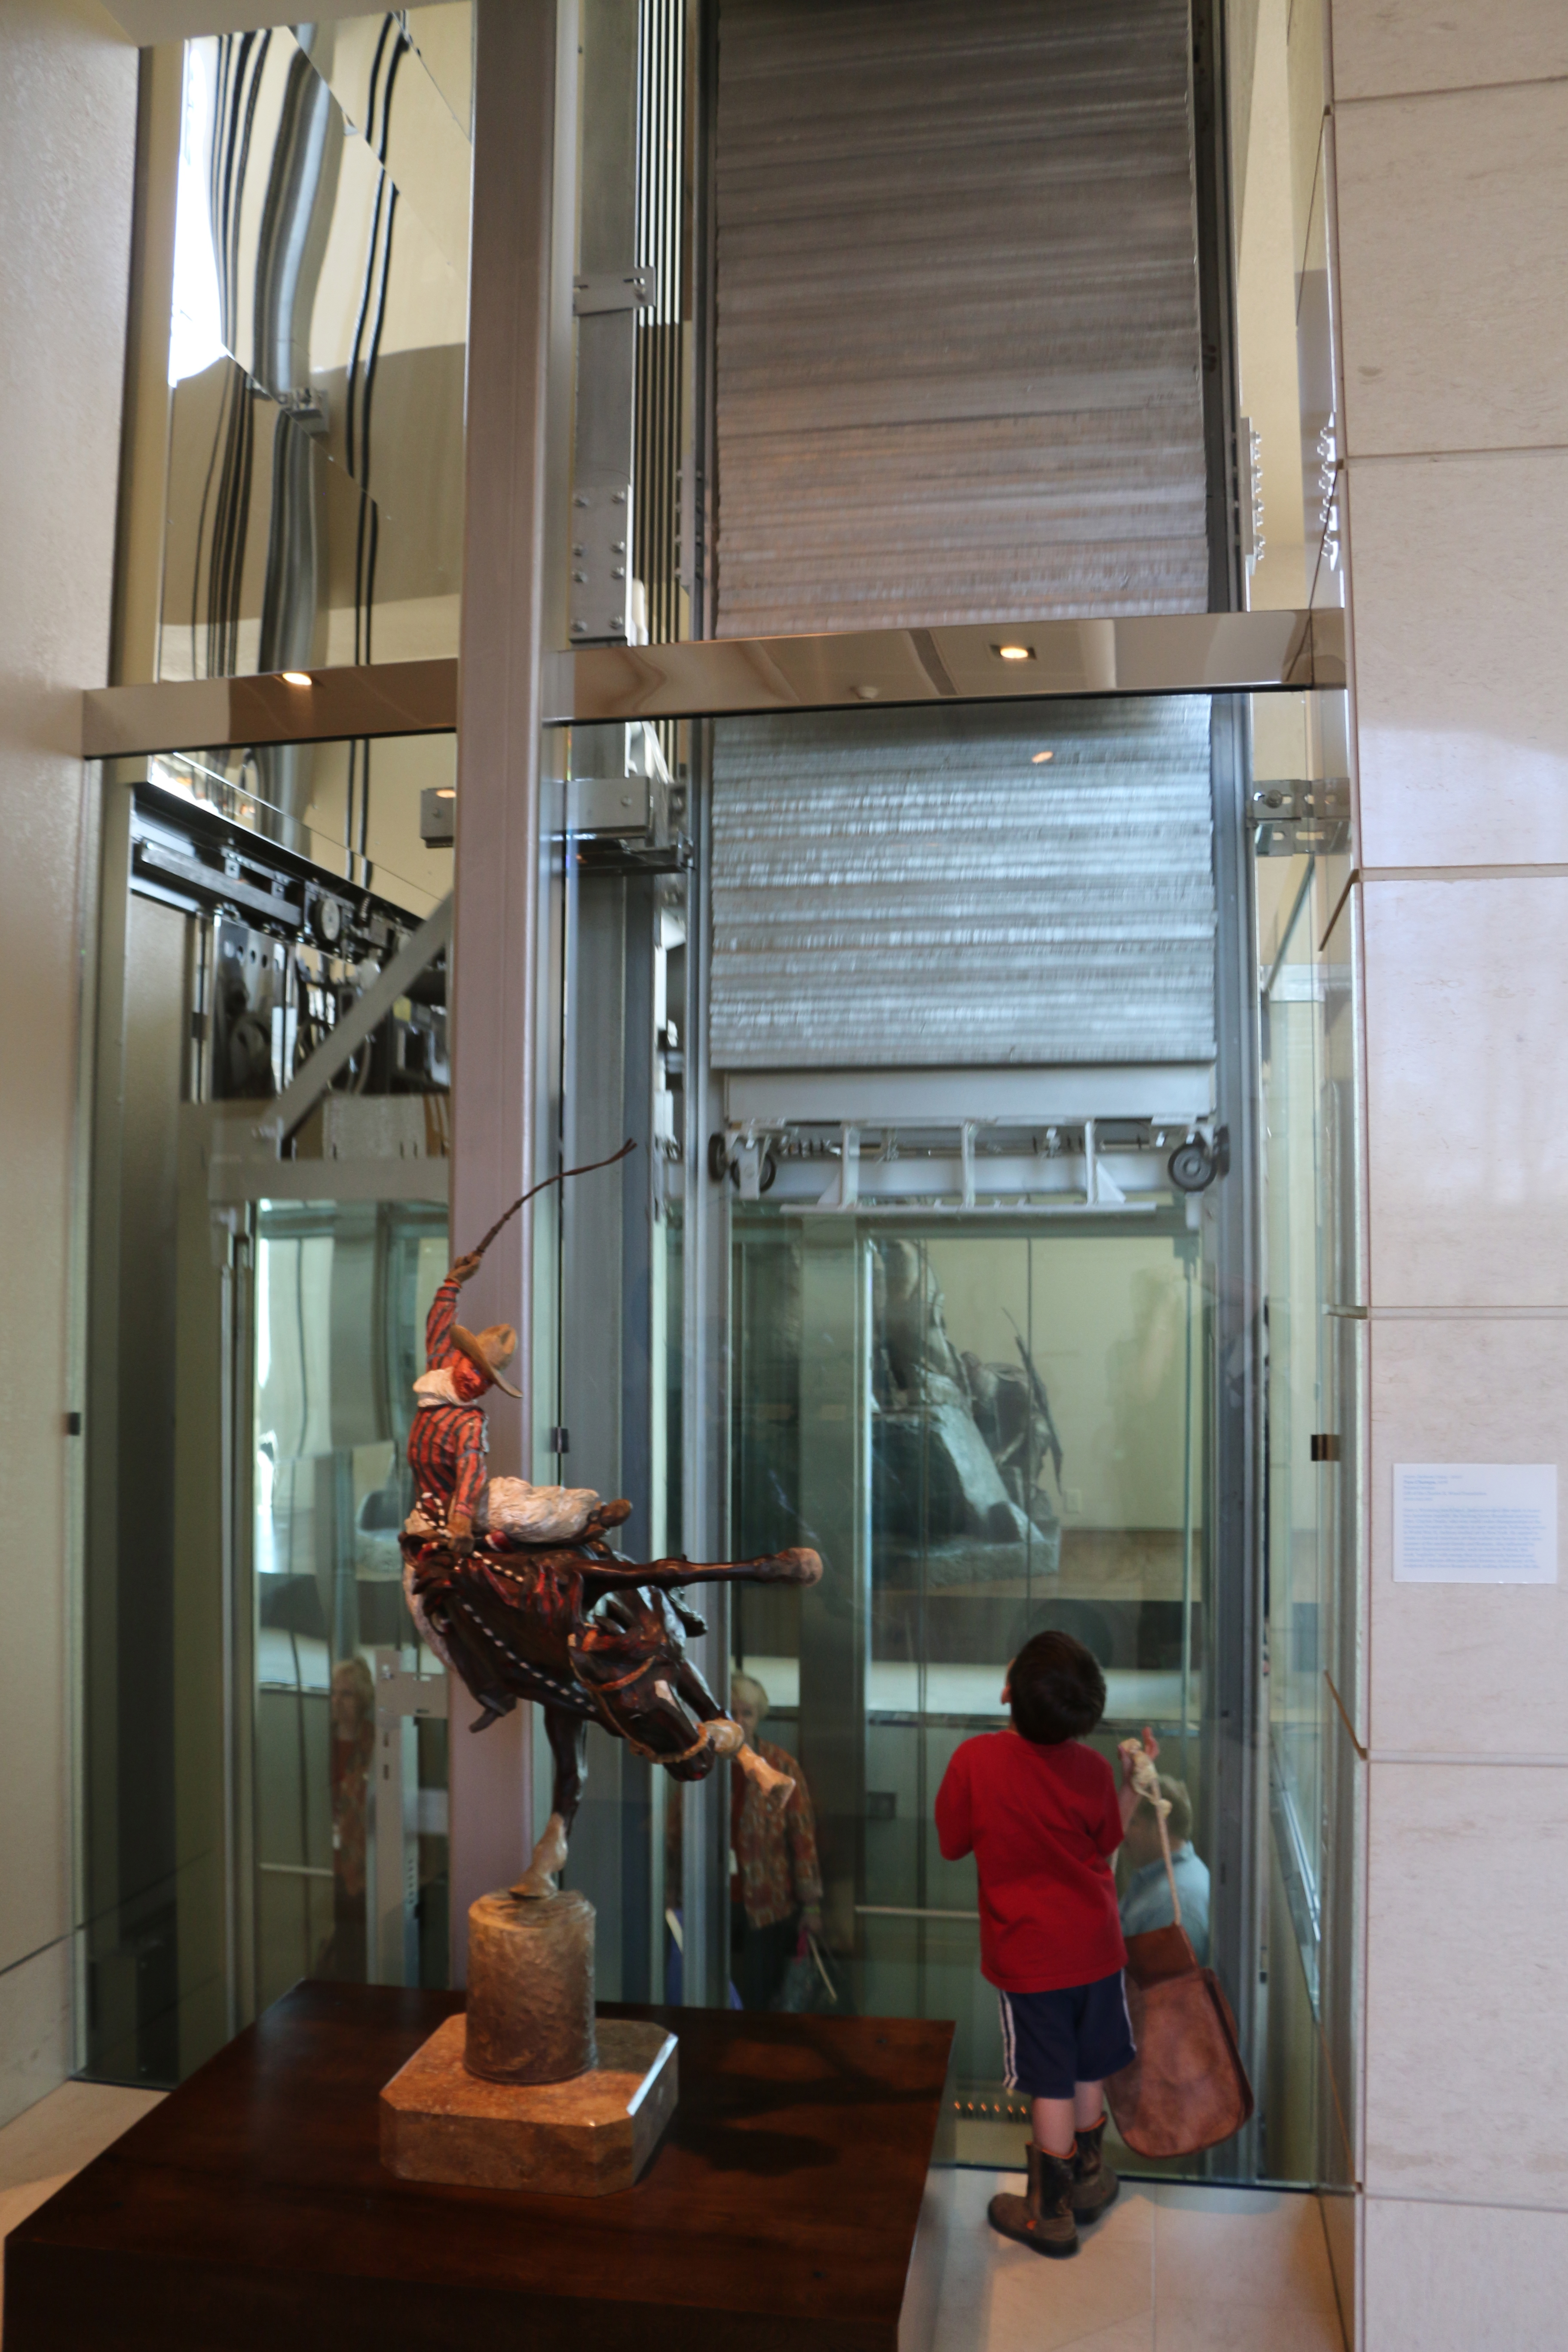 Pulley System To Lift Heavy Objects : Western kids and a rv